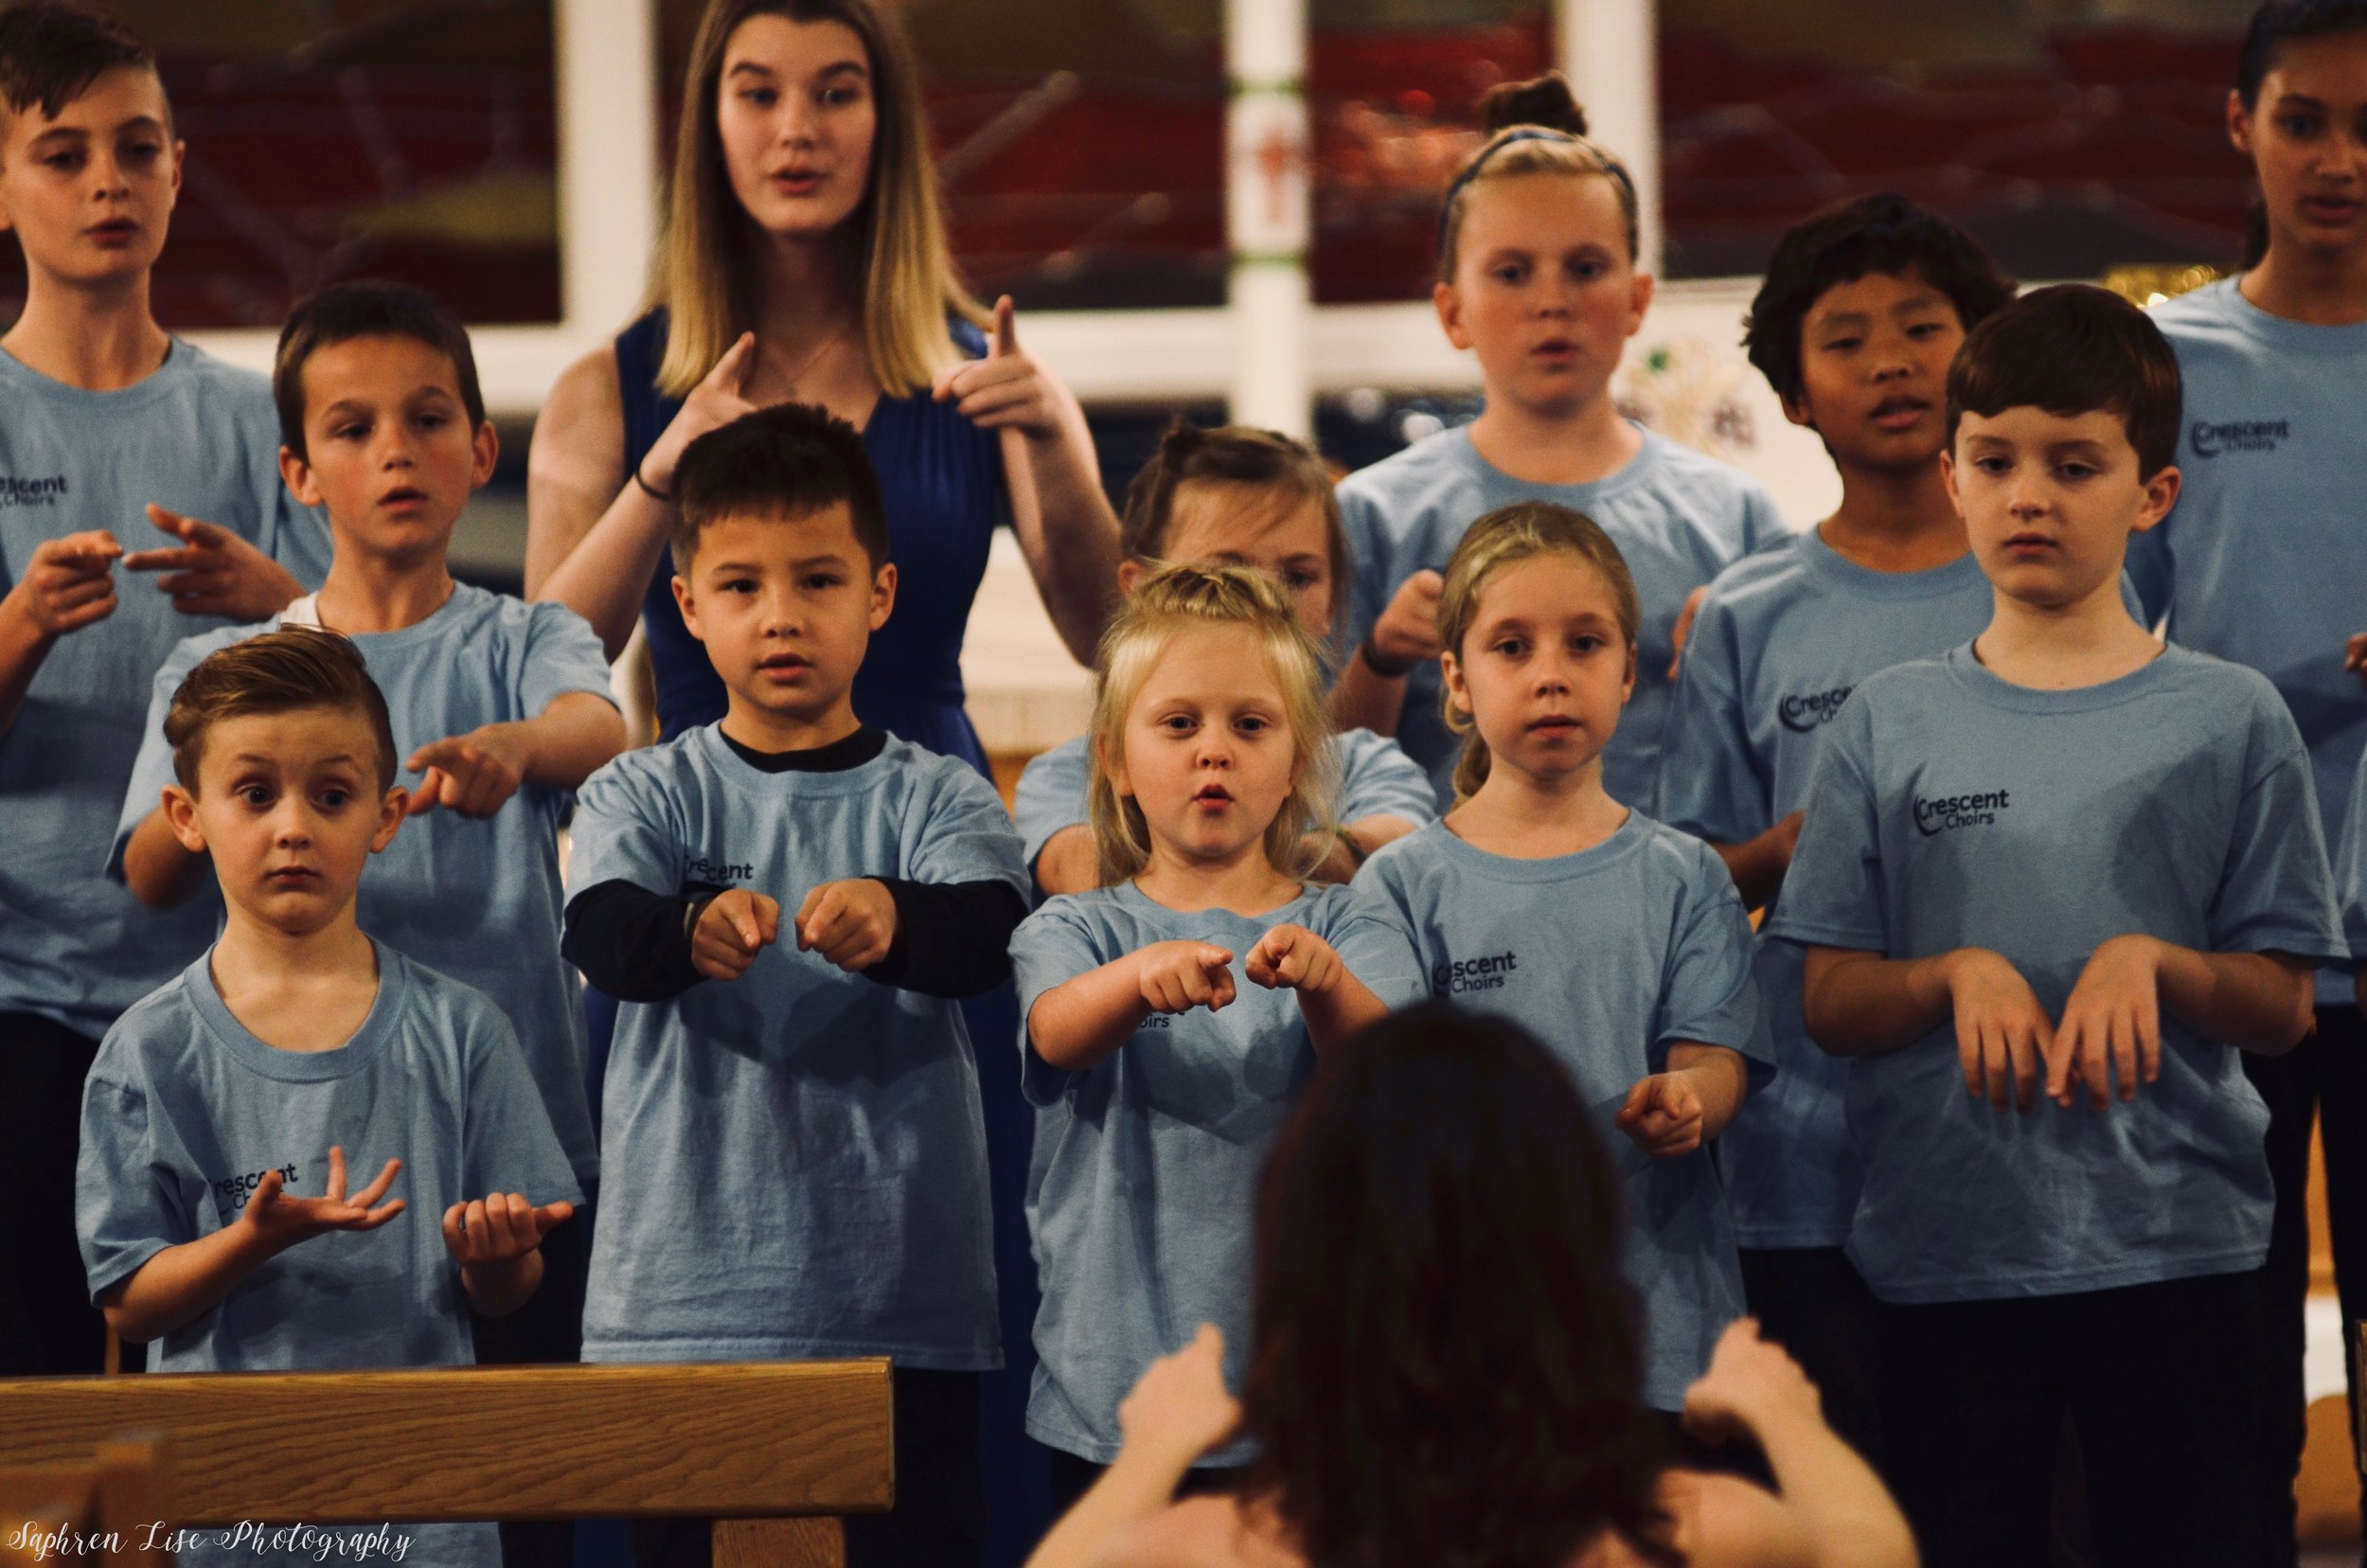 Angeli Children's Choir - For Kindergarten - Grade 2. Read more about the ensemble here! Sign up for our three exciting sessions in the 2019/2020 season.